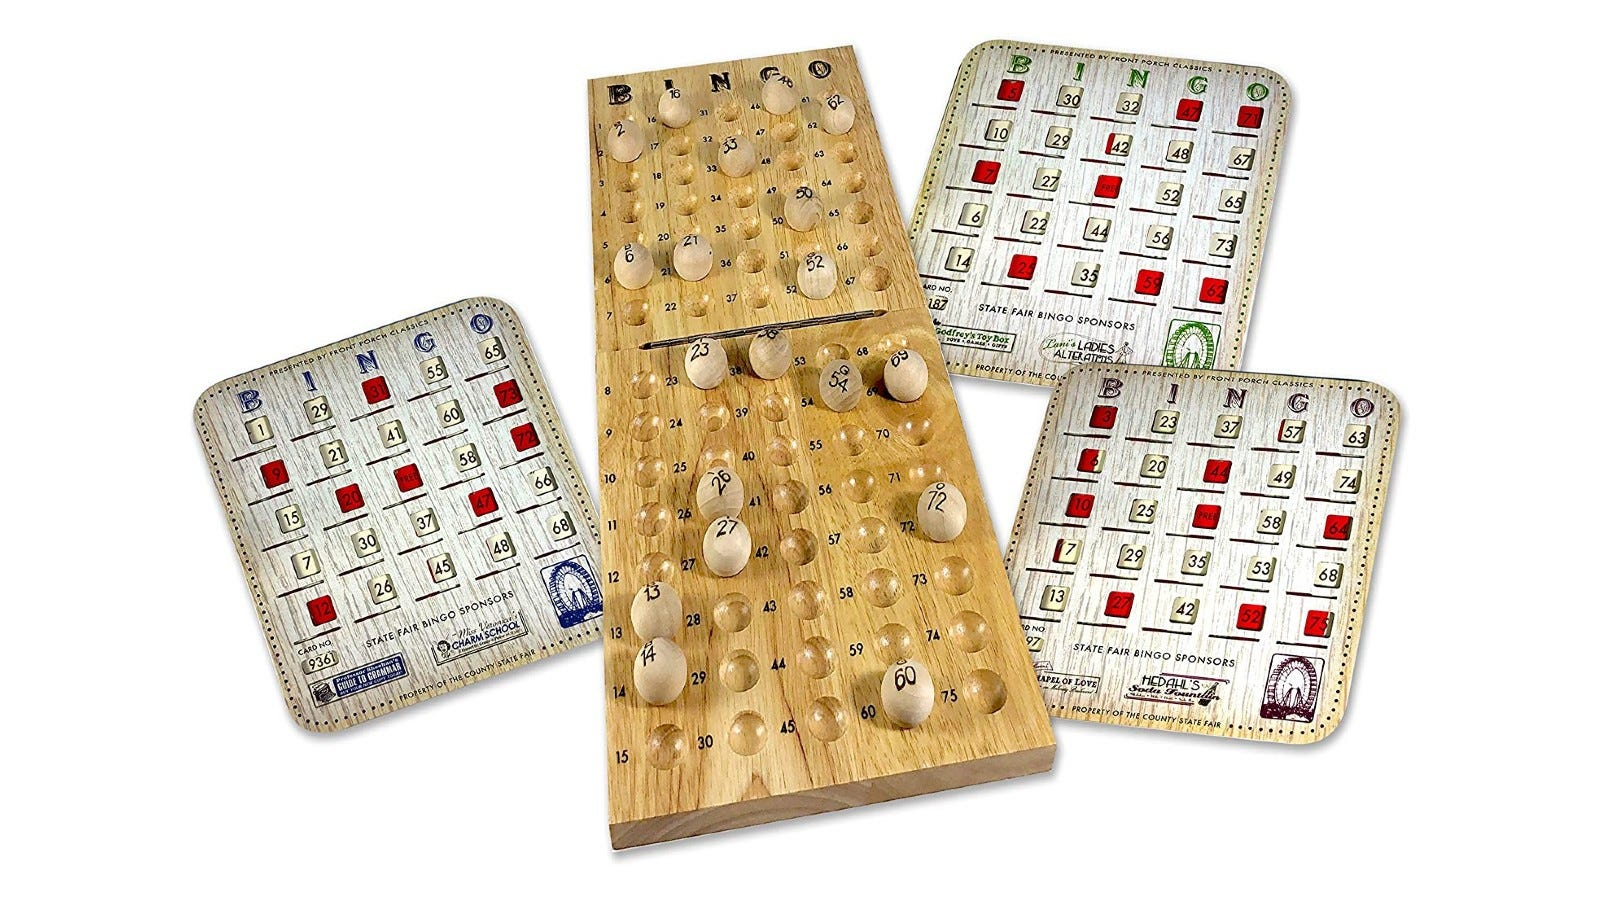 a bingo set with a wooden number ball holder